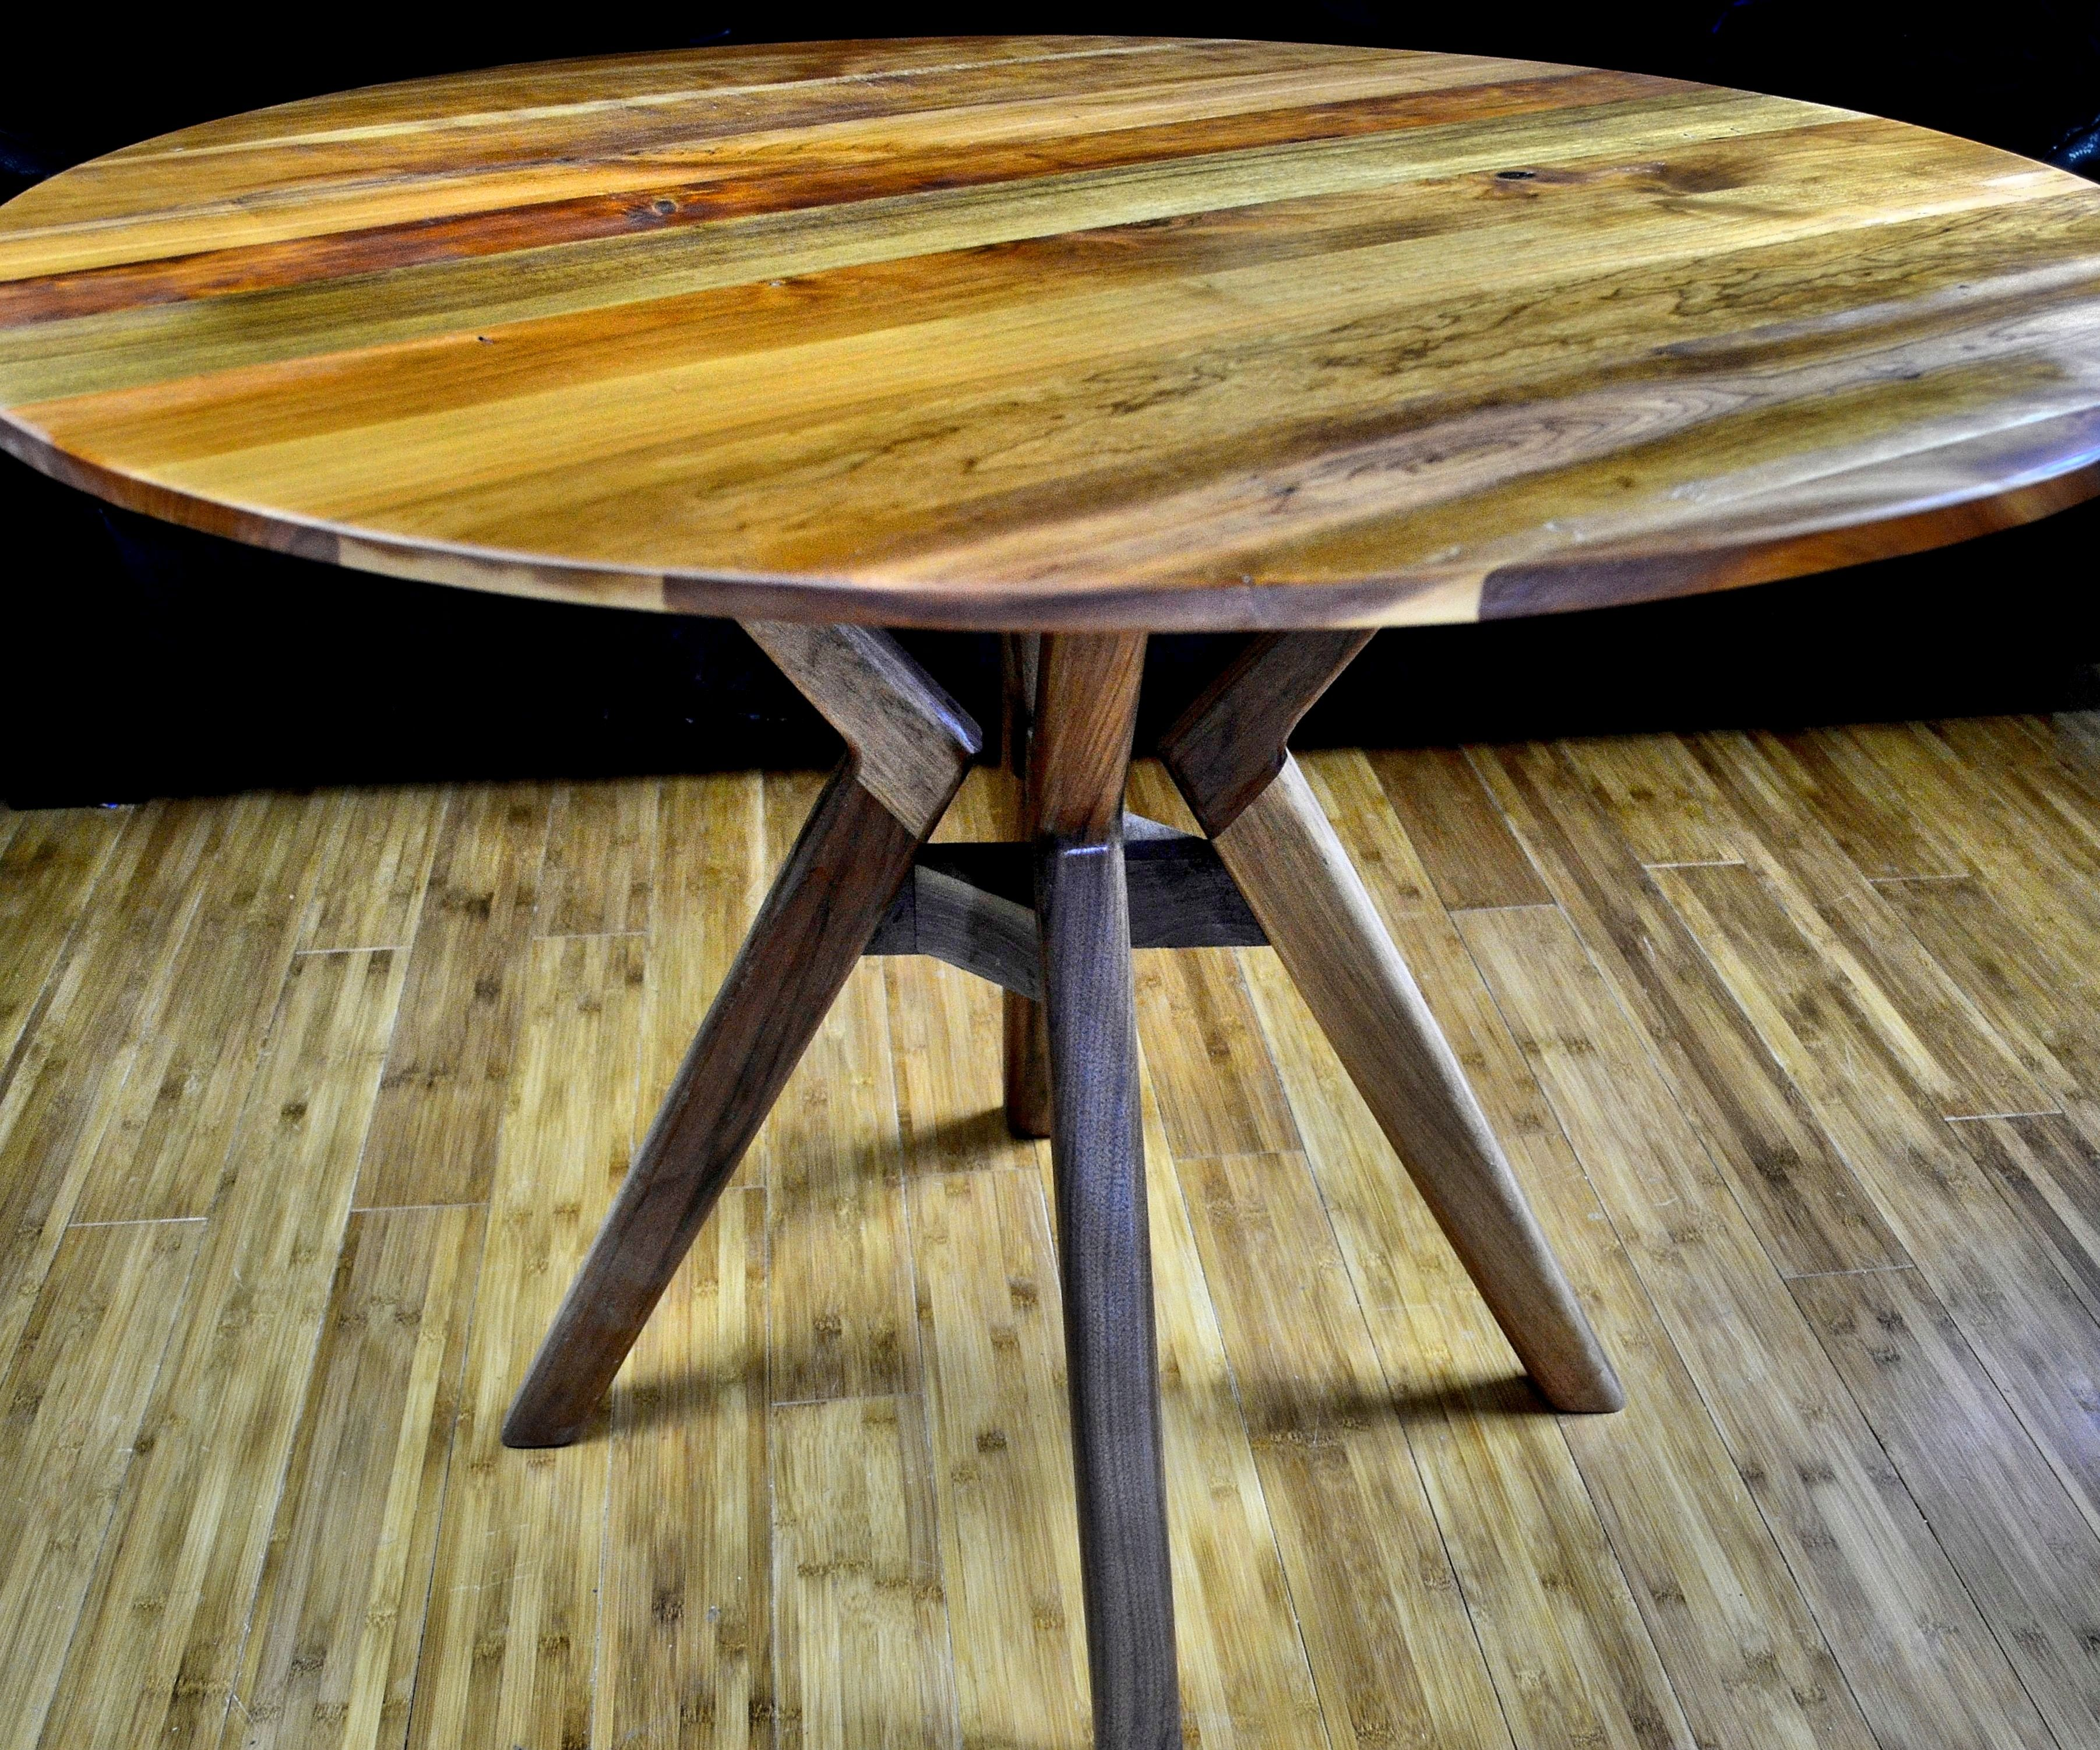 How to cut a round Table top with a circular saw